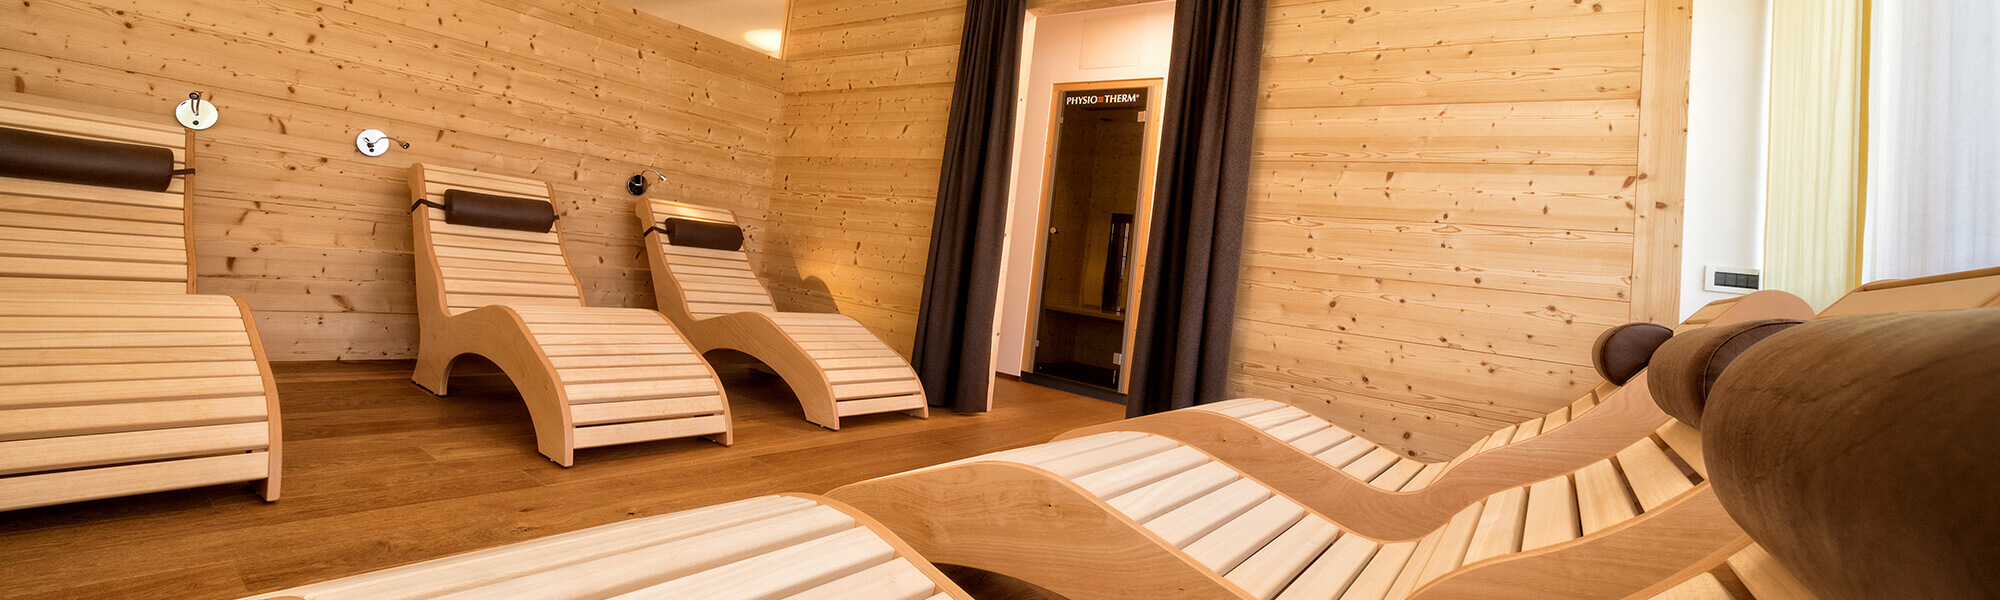 Hotel Elisabeth - Spa & Relaxation